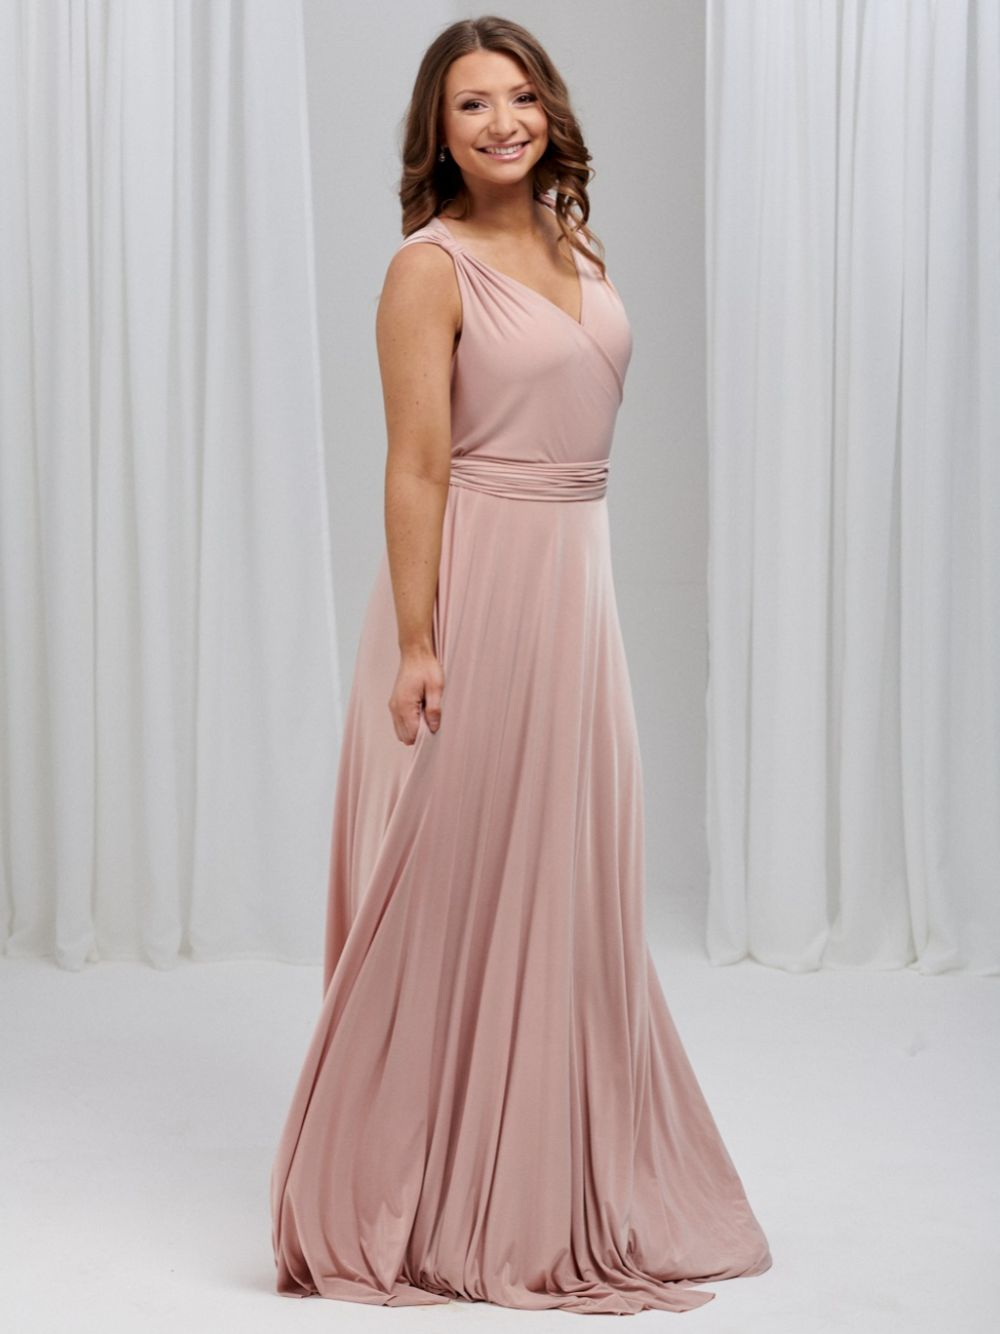 Only Way Ruched Sweetheart Neckline Wrap Bridesmaid Dress